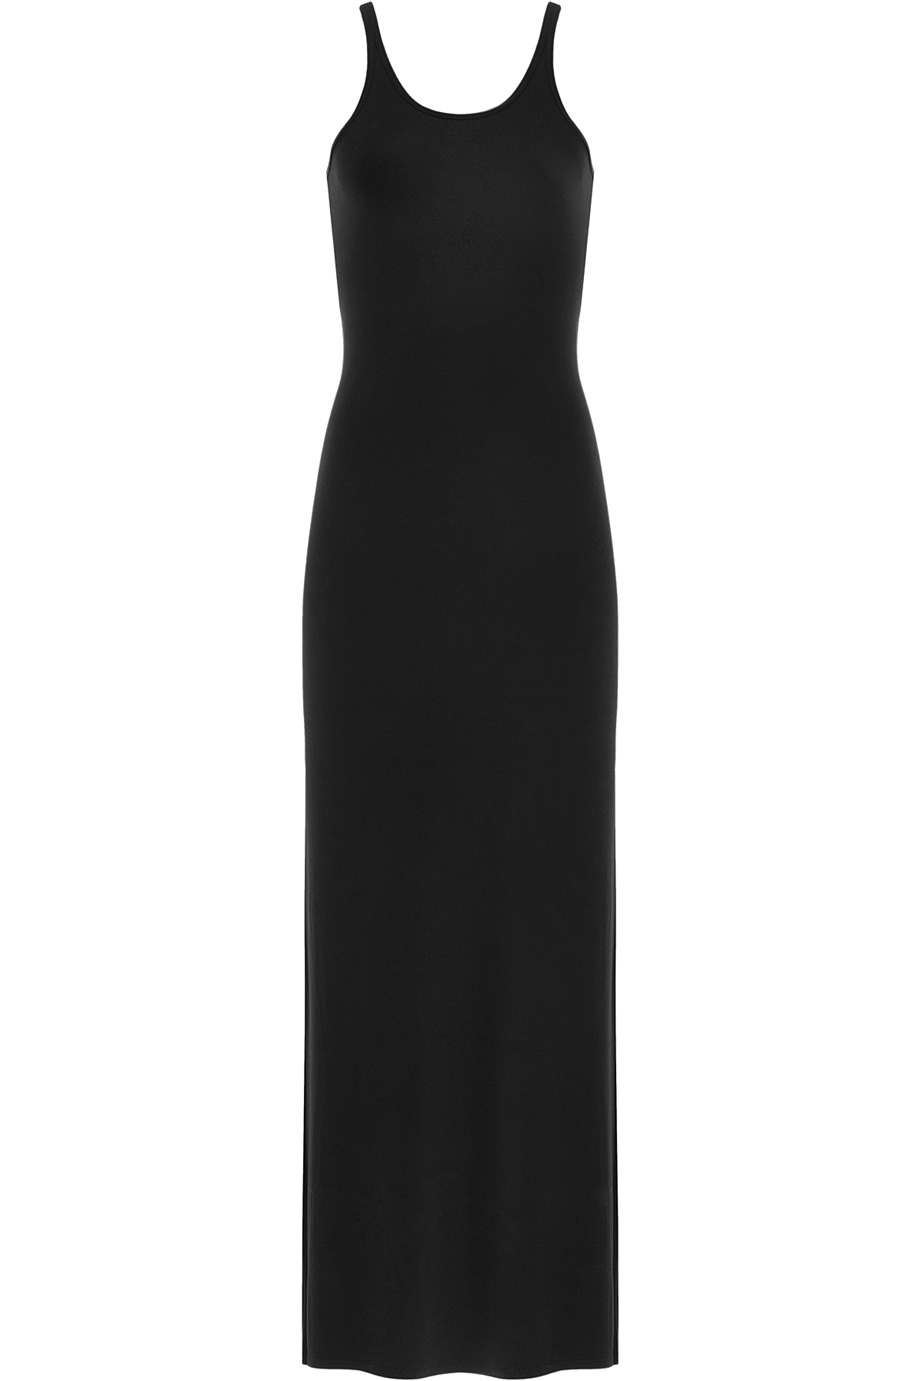 T BY ALEXANDER WANG TANK MAXI DRESS